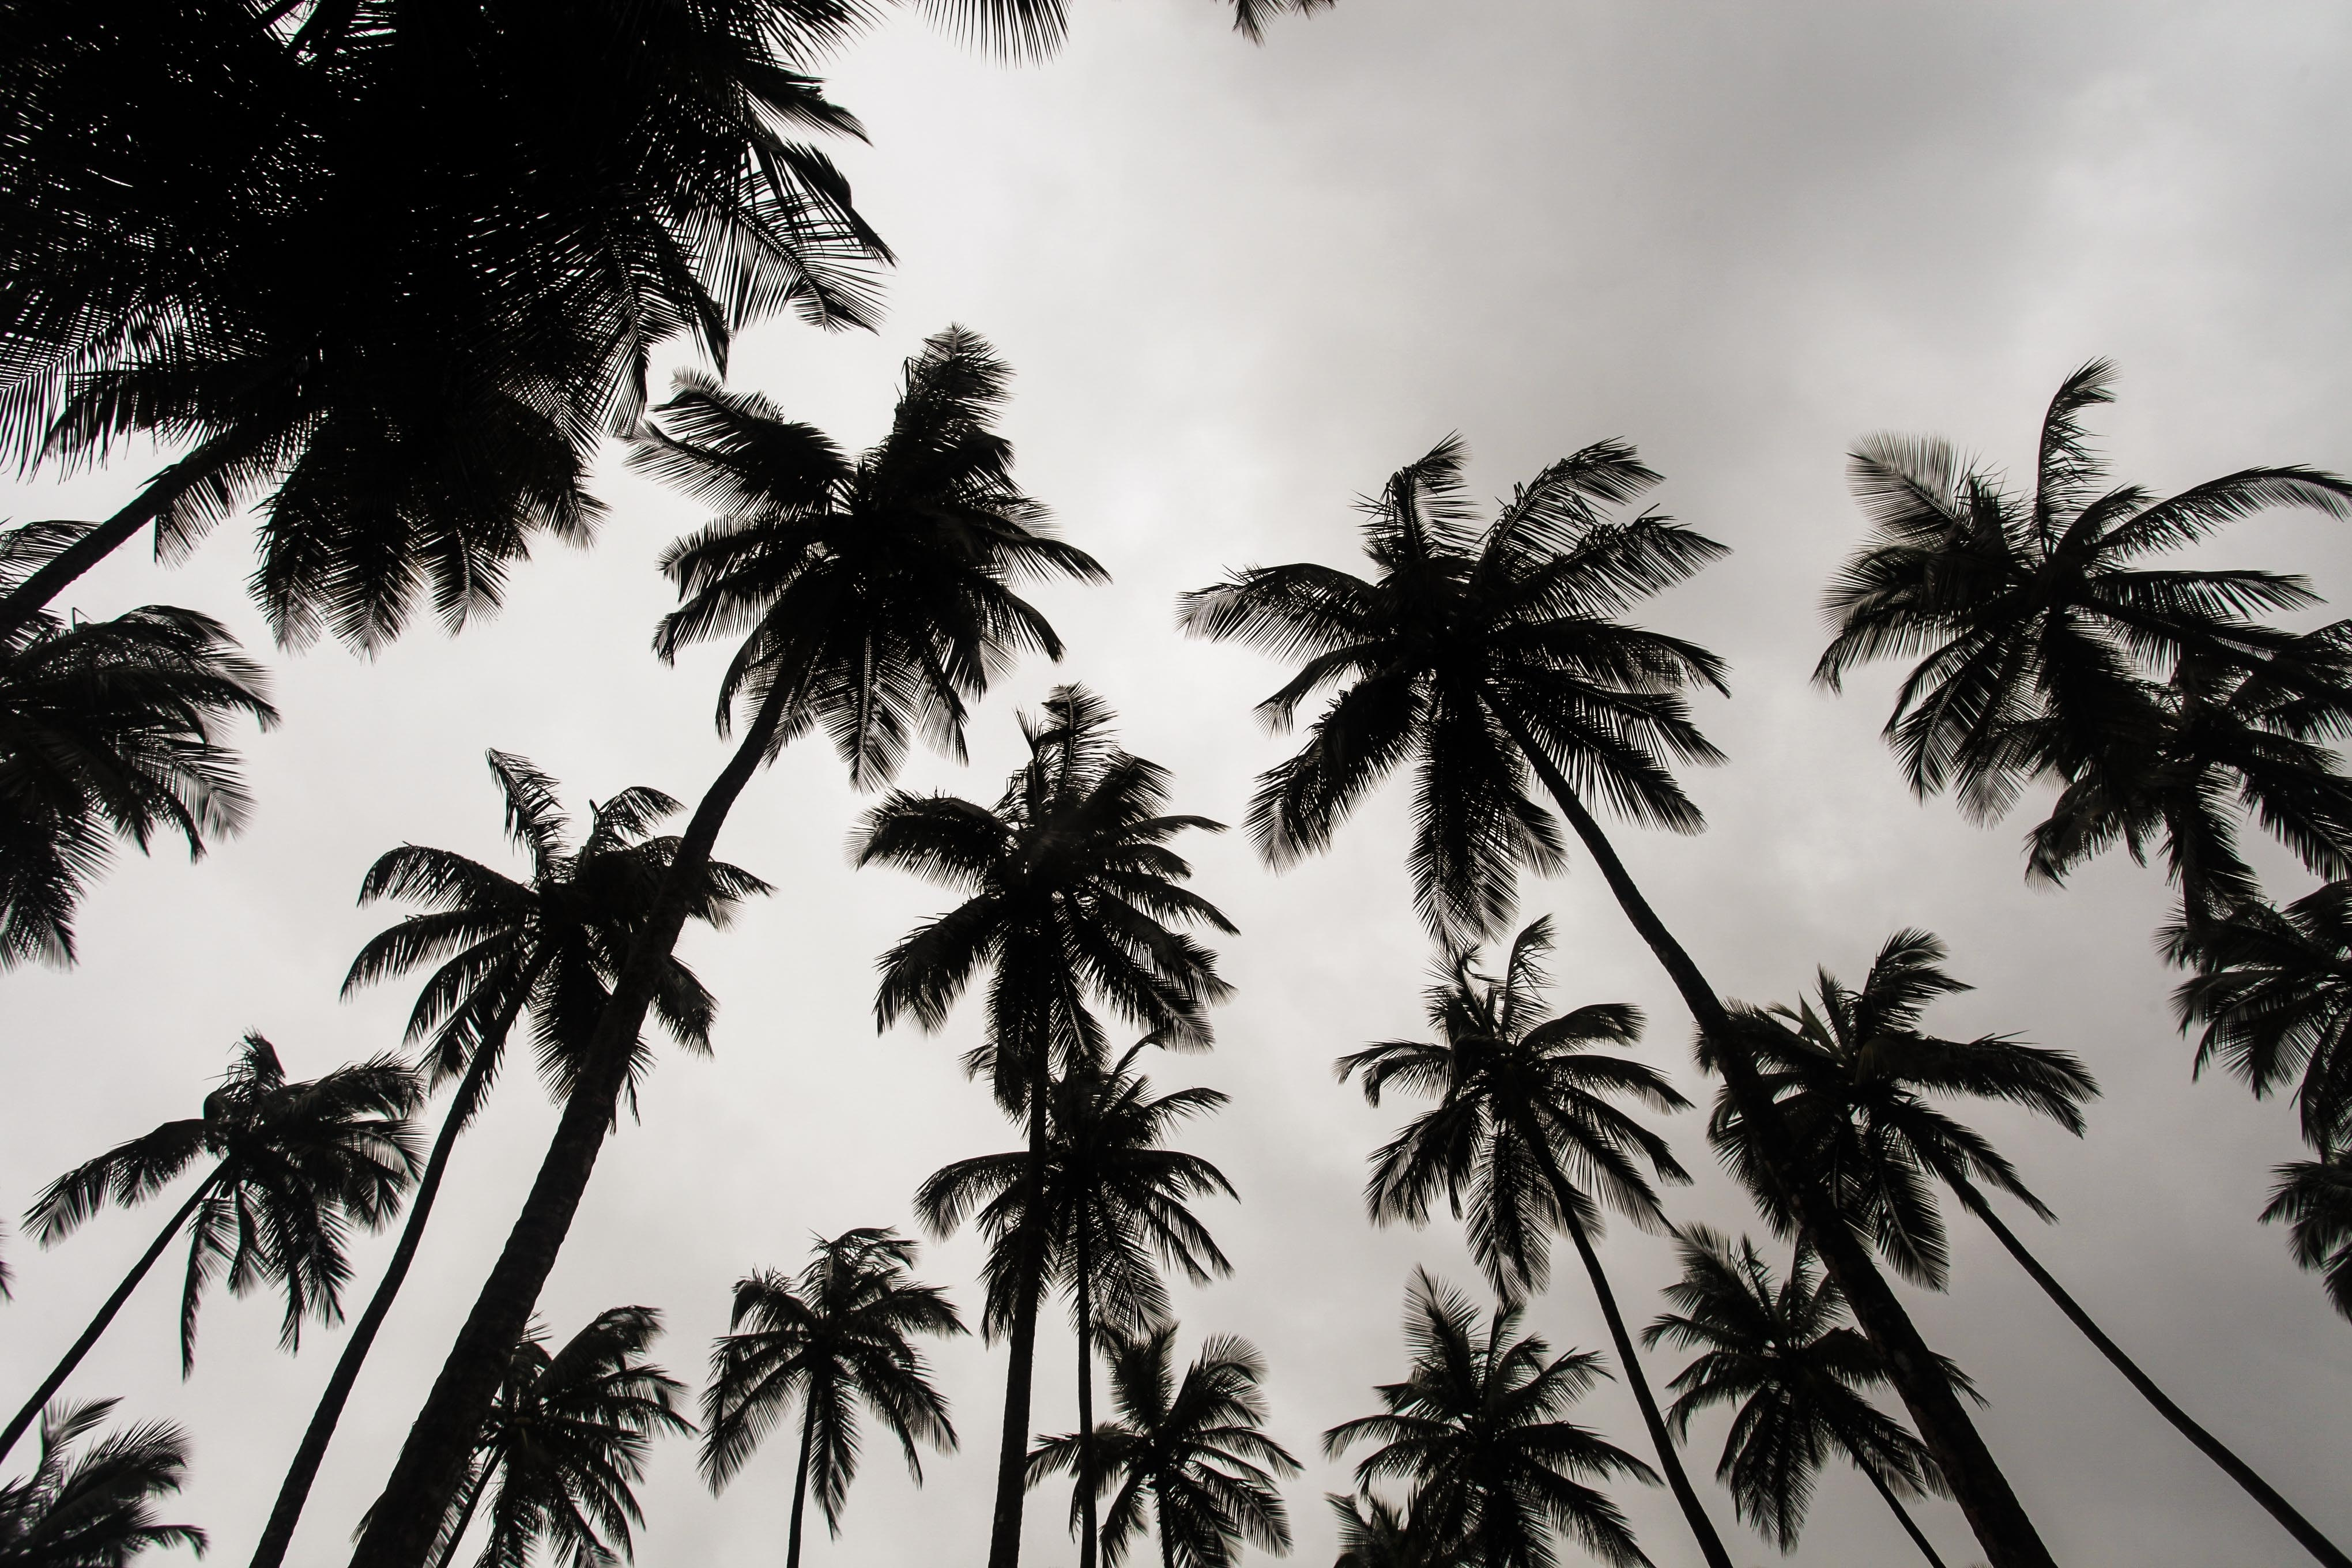 Looking up at the silhouette of a dozen tall palm trees against a grey cloudy sky